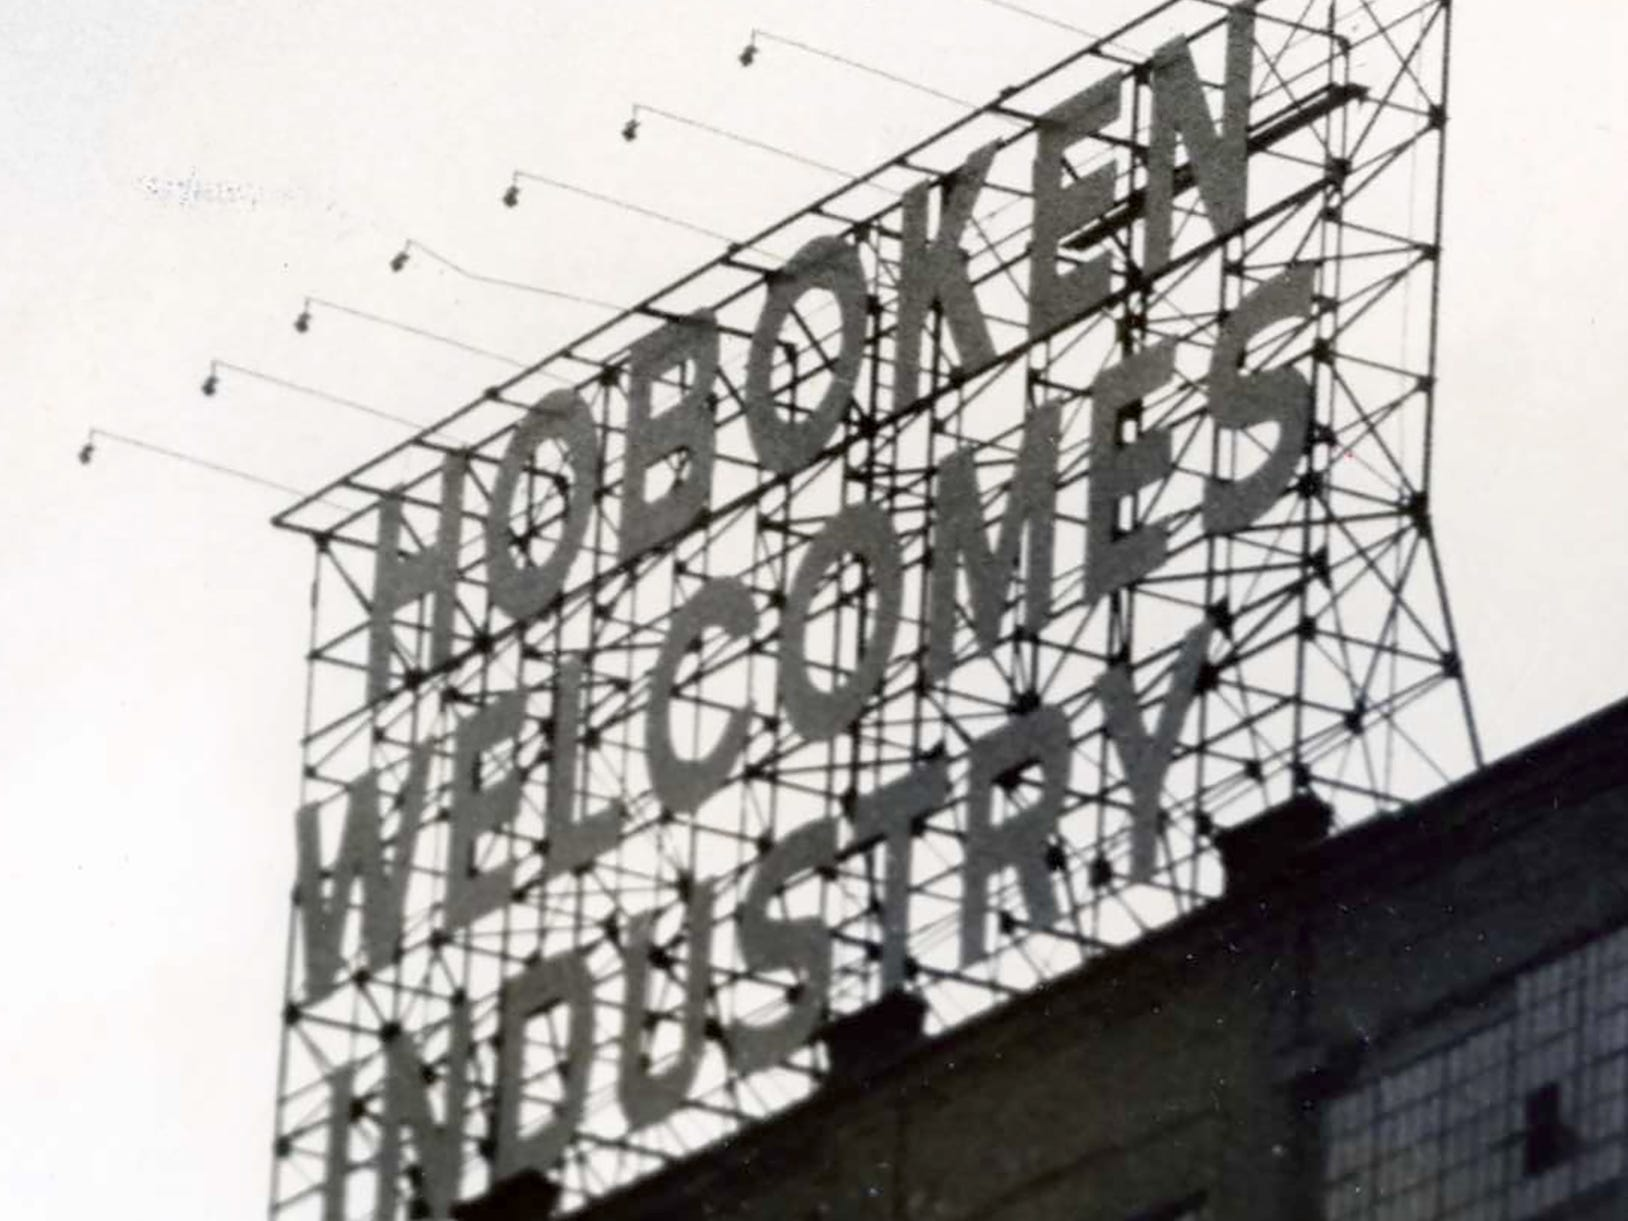 A sign promotes Hoboken's thriving factory industry in 1966.